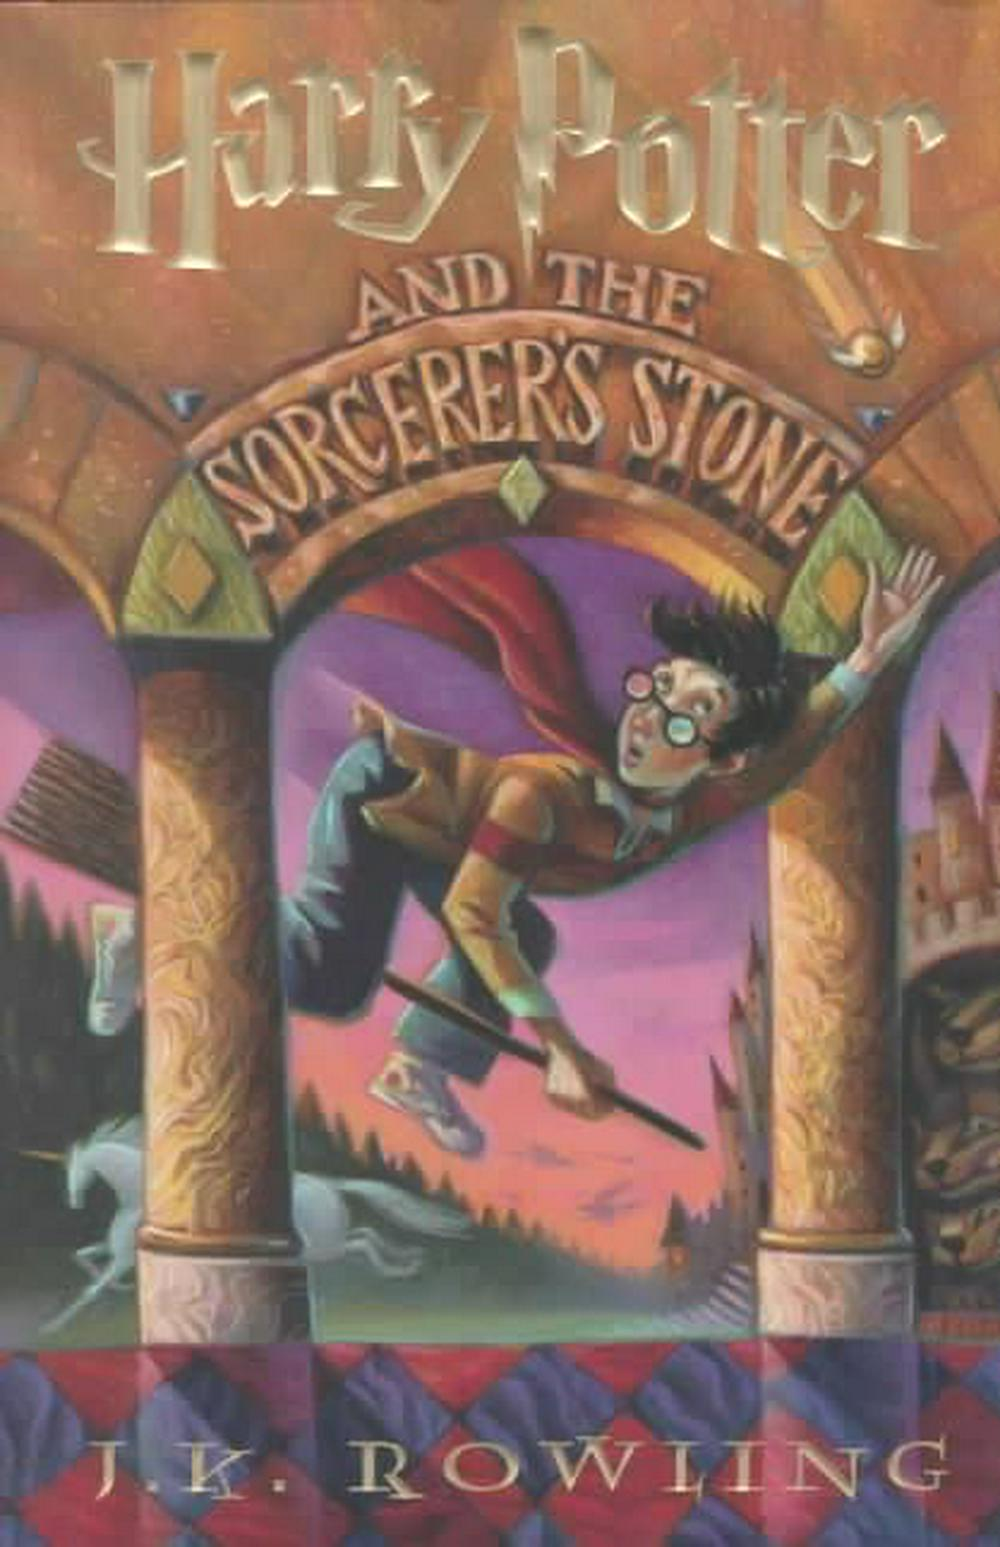 Harry Potter and the Sorcerer's Stone by J K Rowling, ISBN: 9780786222728